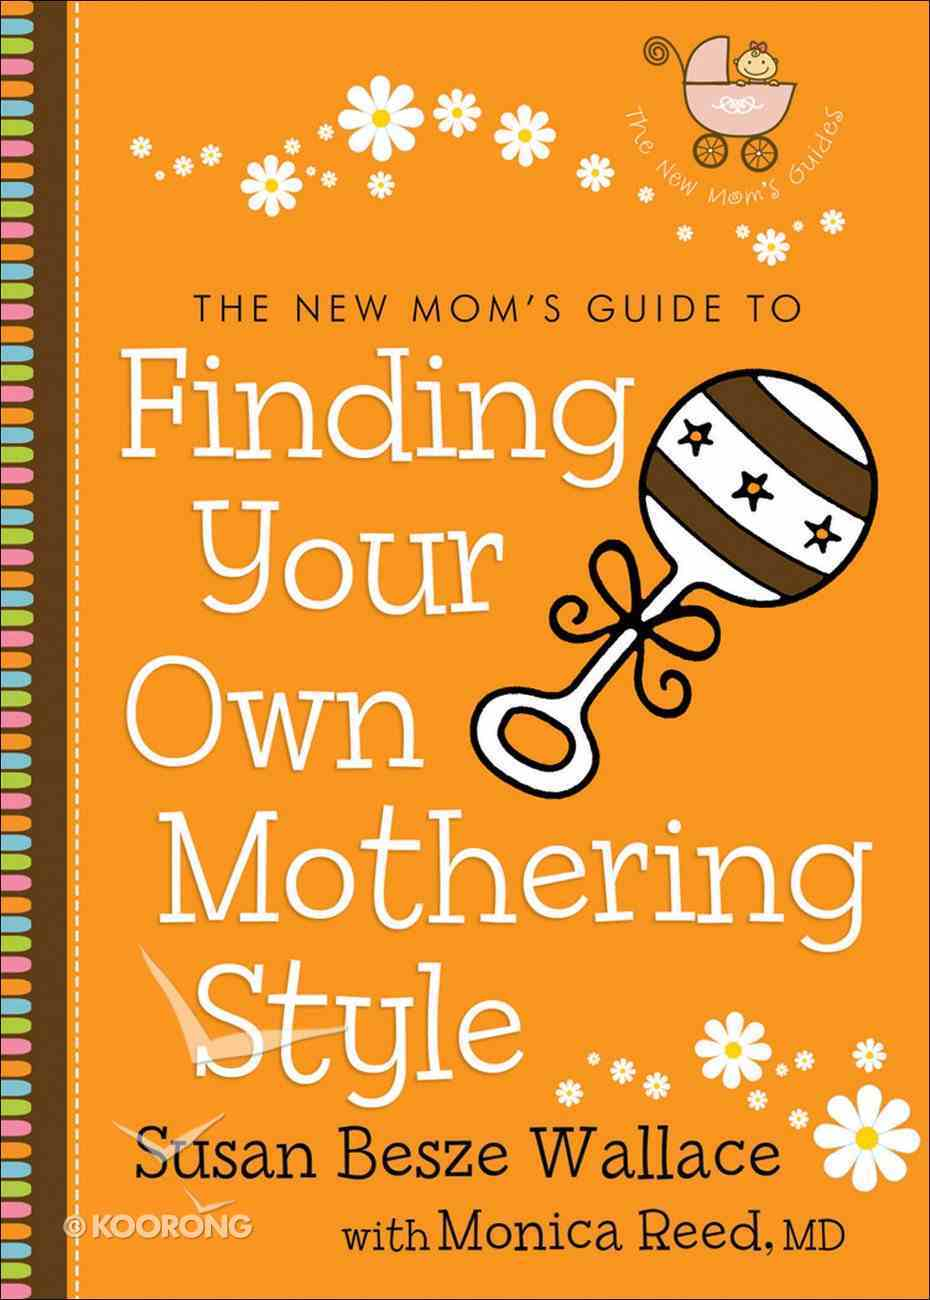 The New Mom's Guide to Finding Your Own Mothering Style (The New Mom's Guides) eBook